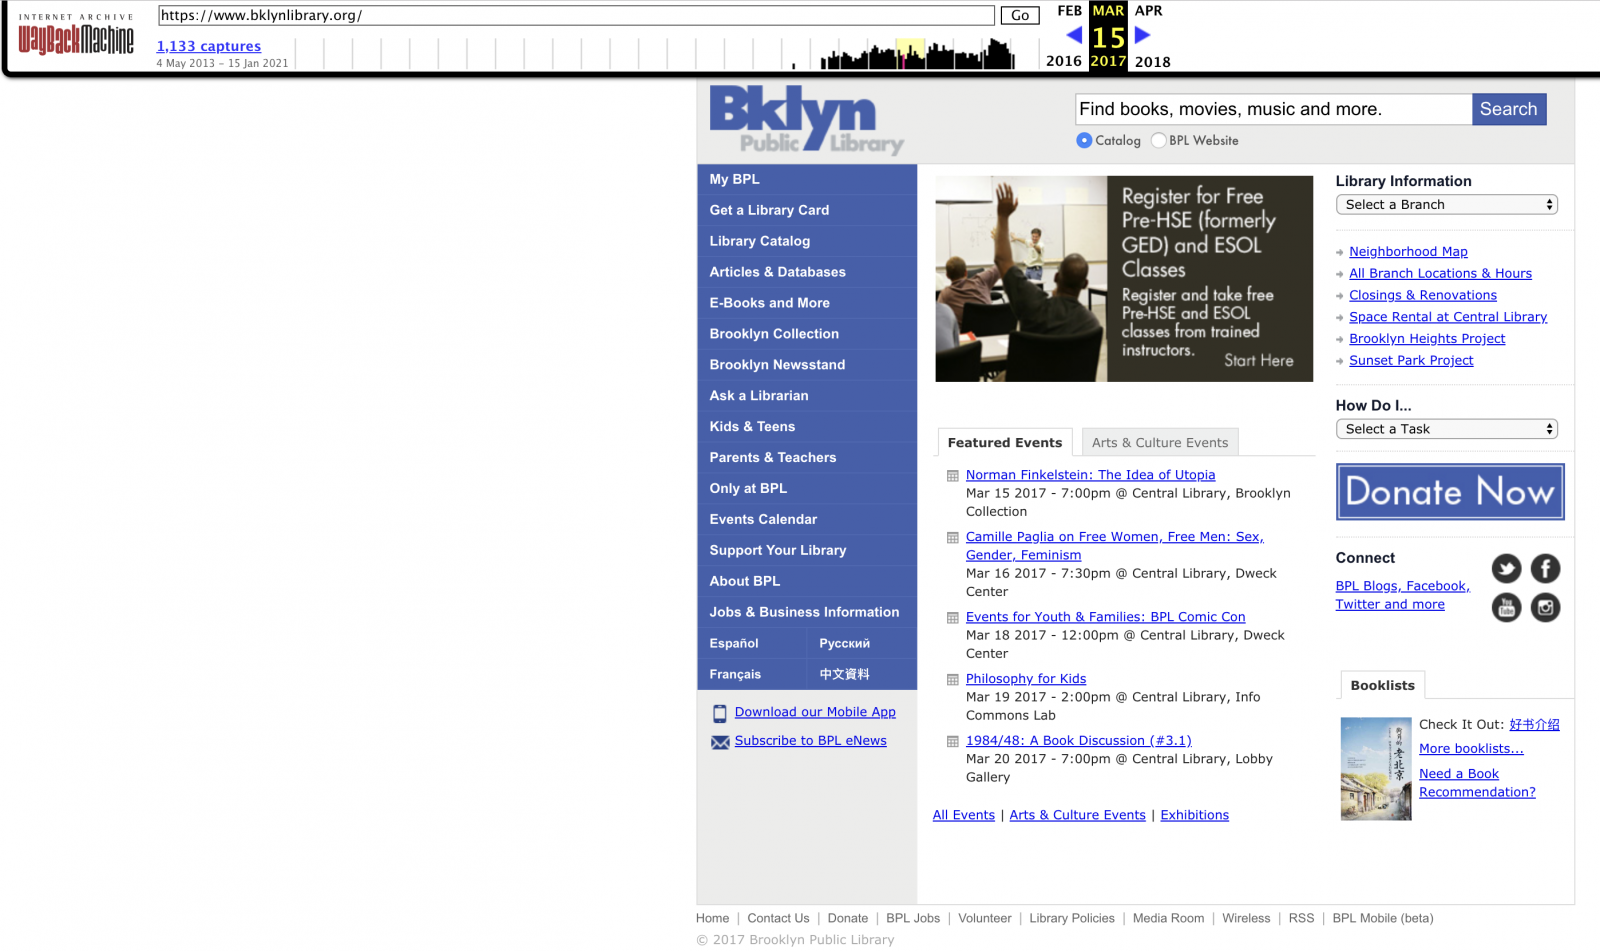 Screen shot of Brooklyn Public Library website in March 2017 via the Wayback Machine